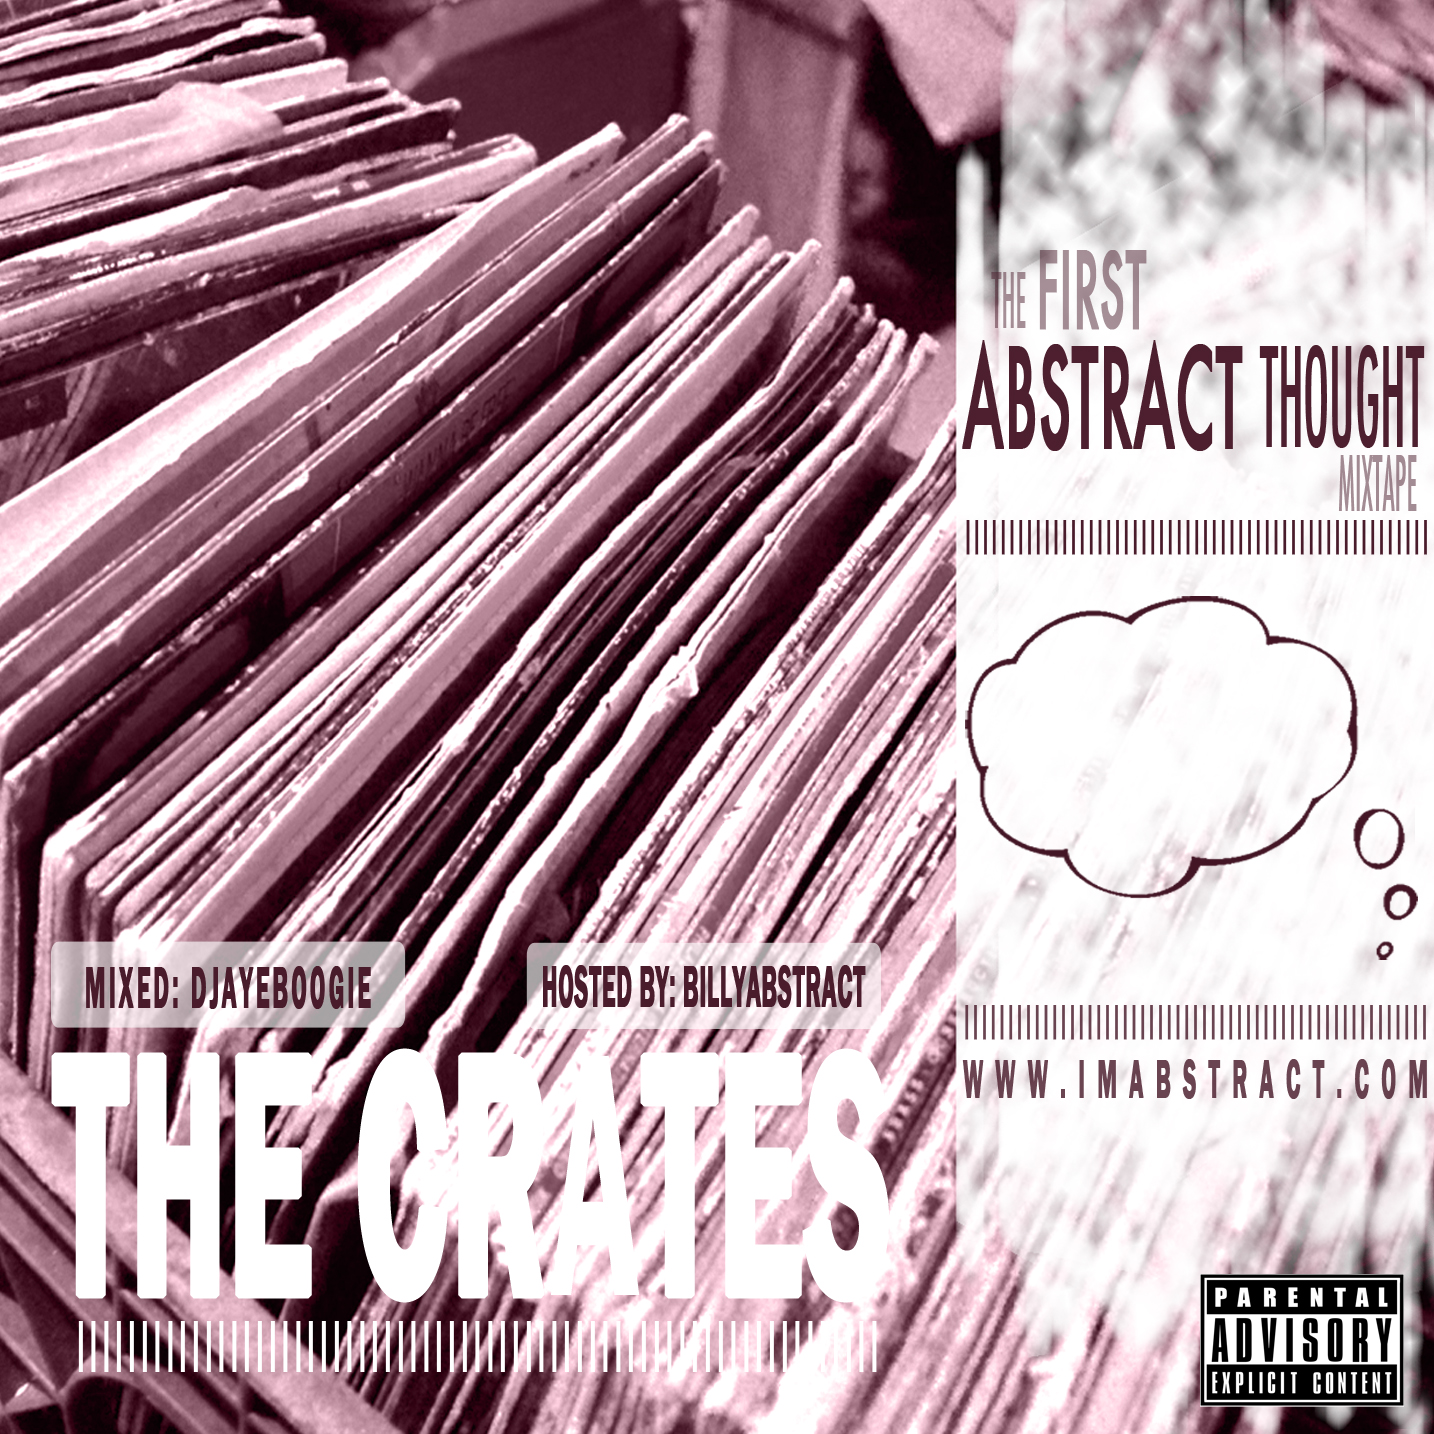 Abstract Thought (alwaysABSTRACT) – The Crates (Mixtape) (Hosted by @BillyABSTRACT & @DjAYEboogie)